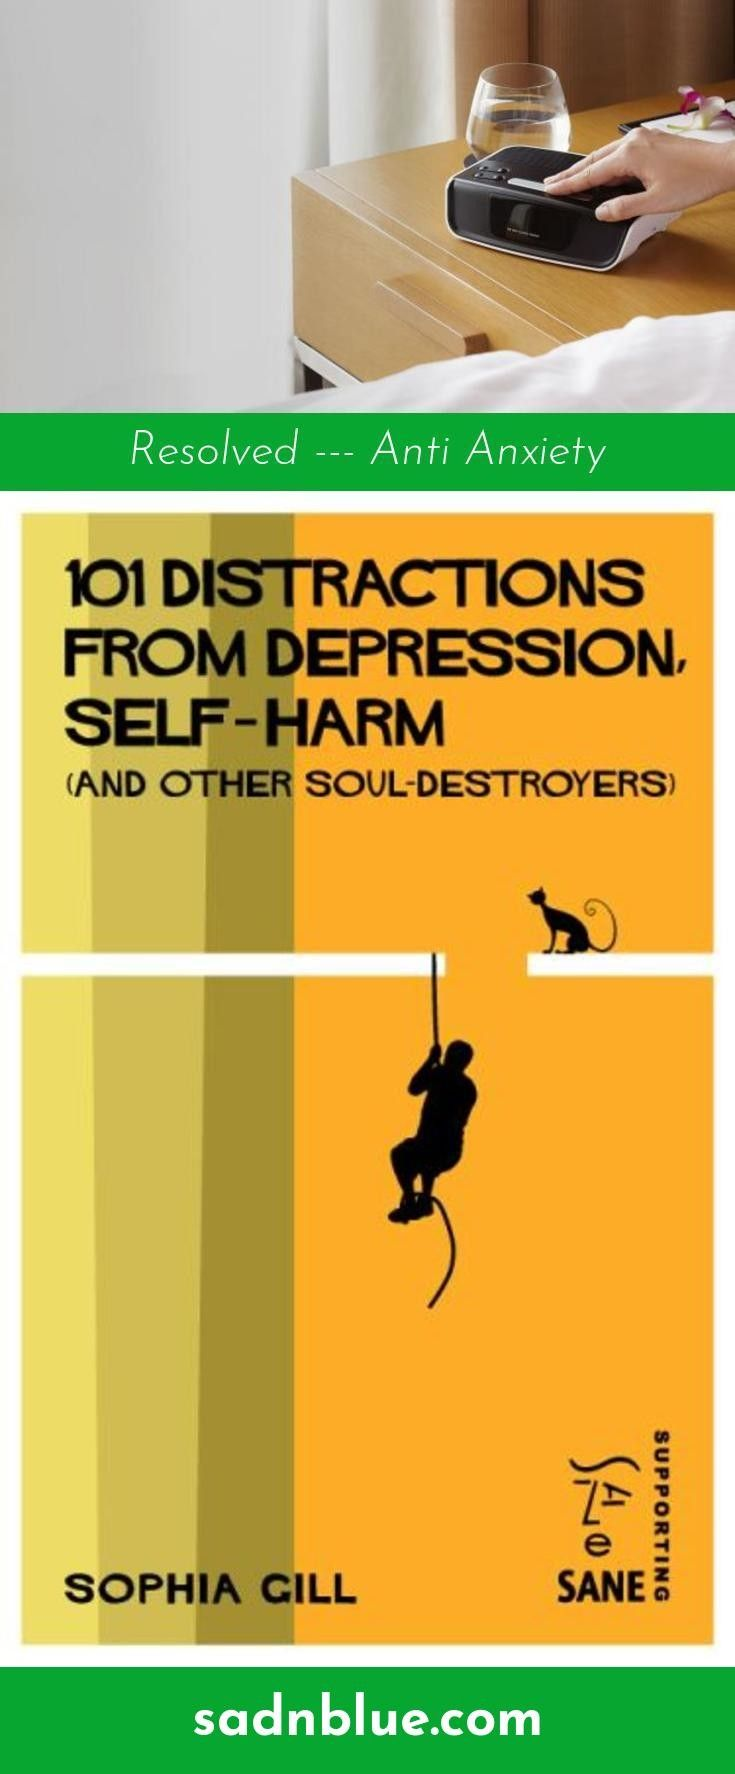 Stuck in the mud managing major depression? Now there is an alternative